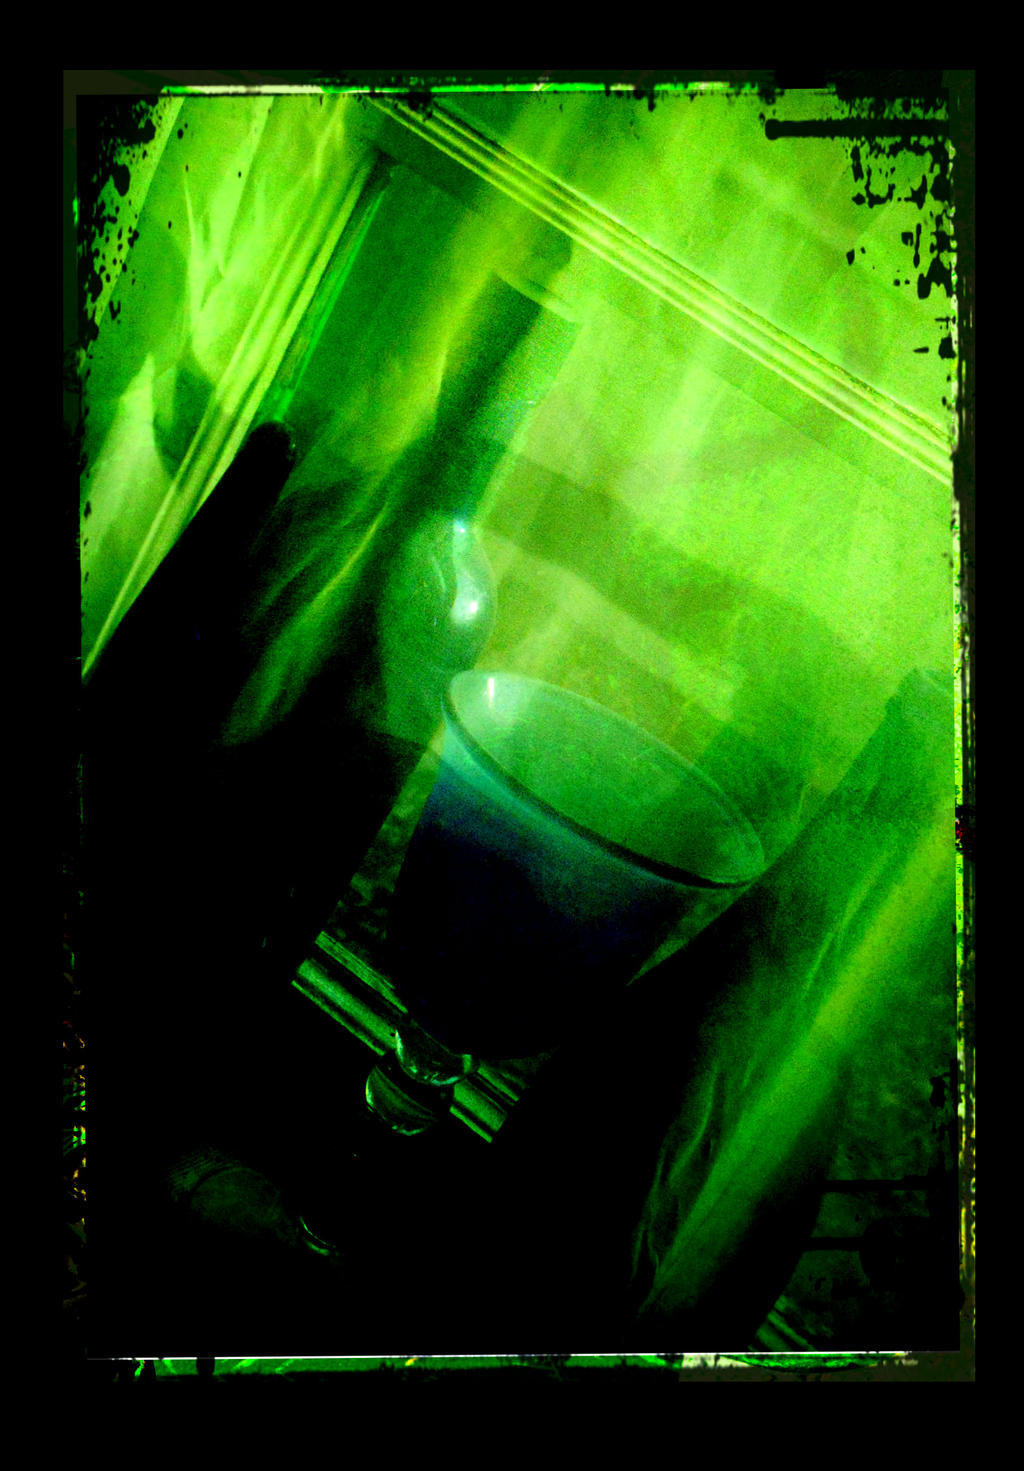 La chambre verte 4a by roh klar on deviantart for La chambre verte truffaut youtube